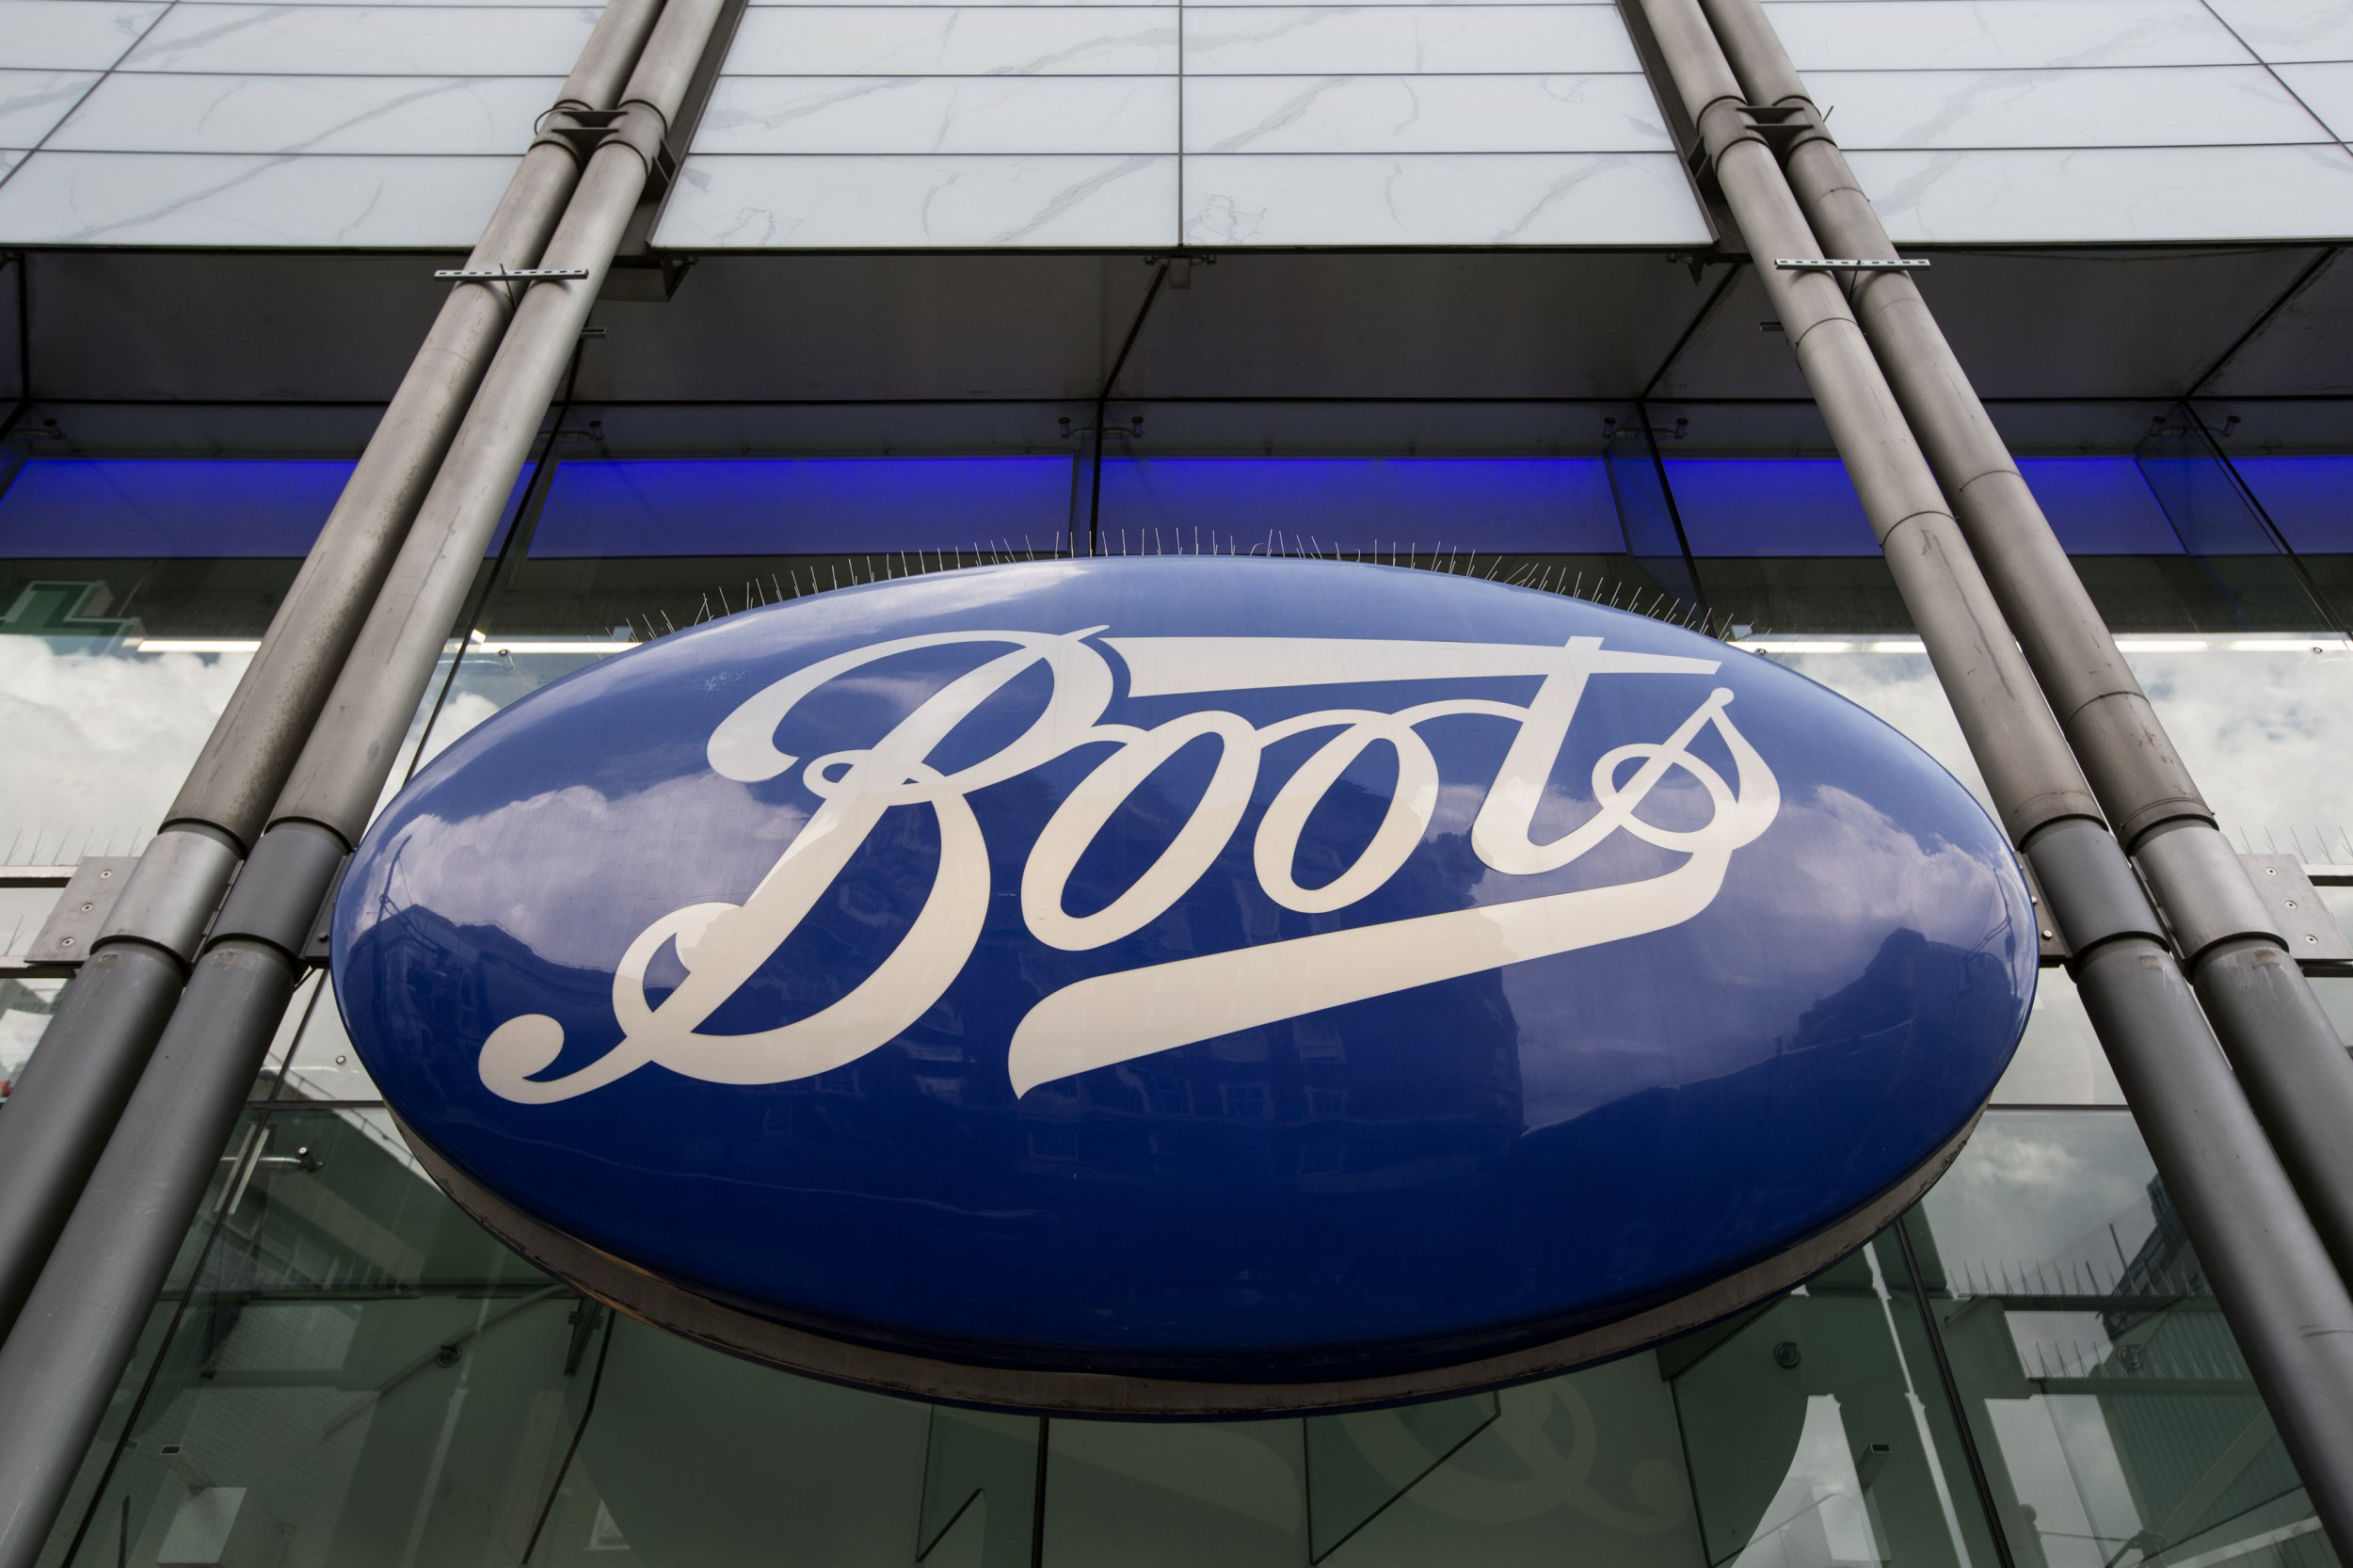 Boots \u0027could close 200 stores\u0027 in latest high street blow